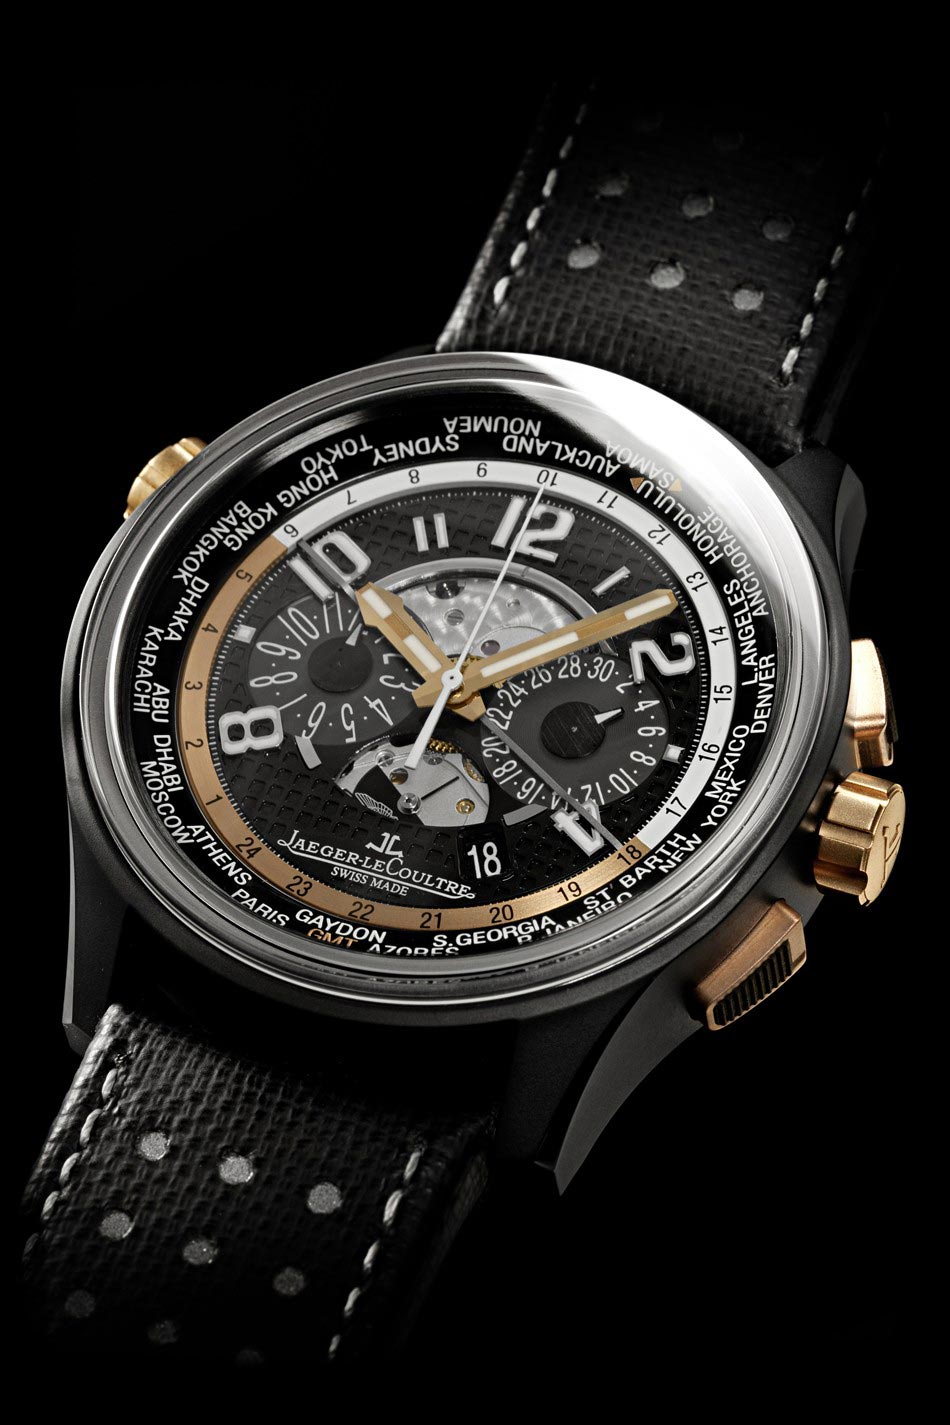 AMVOX5 World Chronograph &#8211; Jaeger-LeCoultre and Aston Martin Partnerships Latest Creation